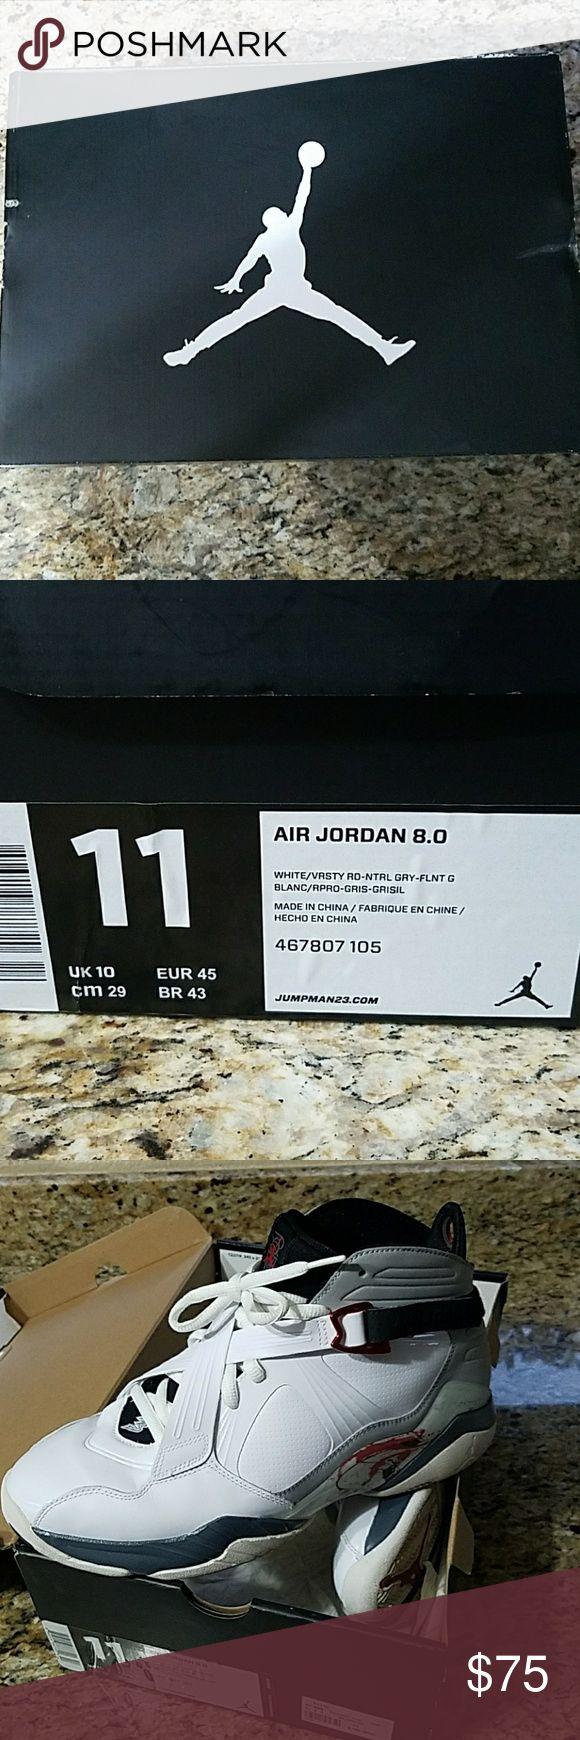 Air Jordan VIII shoes size 11 Only worn once! Great deal offers welcomed! Any questions leave a comment! Shoes in amazing condition! Jordan Shoes Sneakers